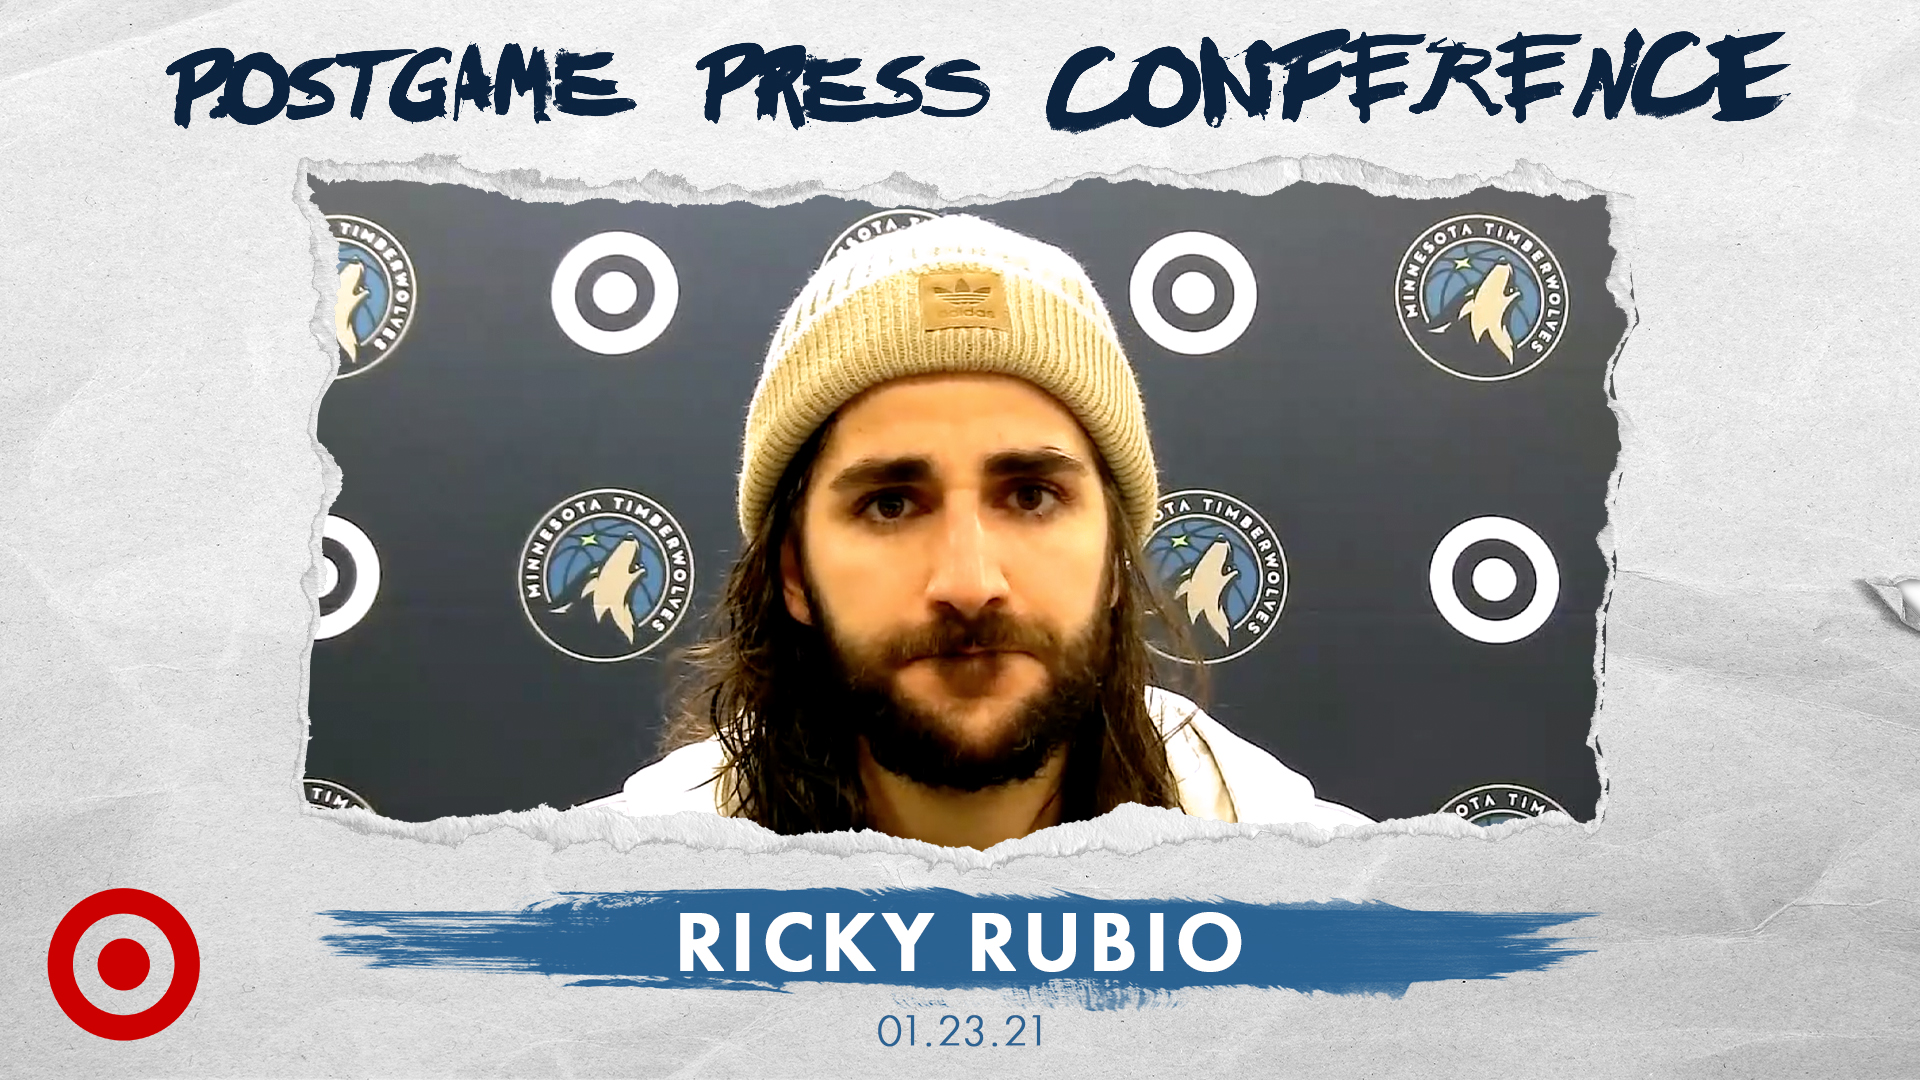 Ricky Rubio Postgame Press Conference - January 23, 2021